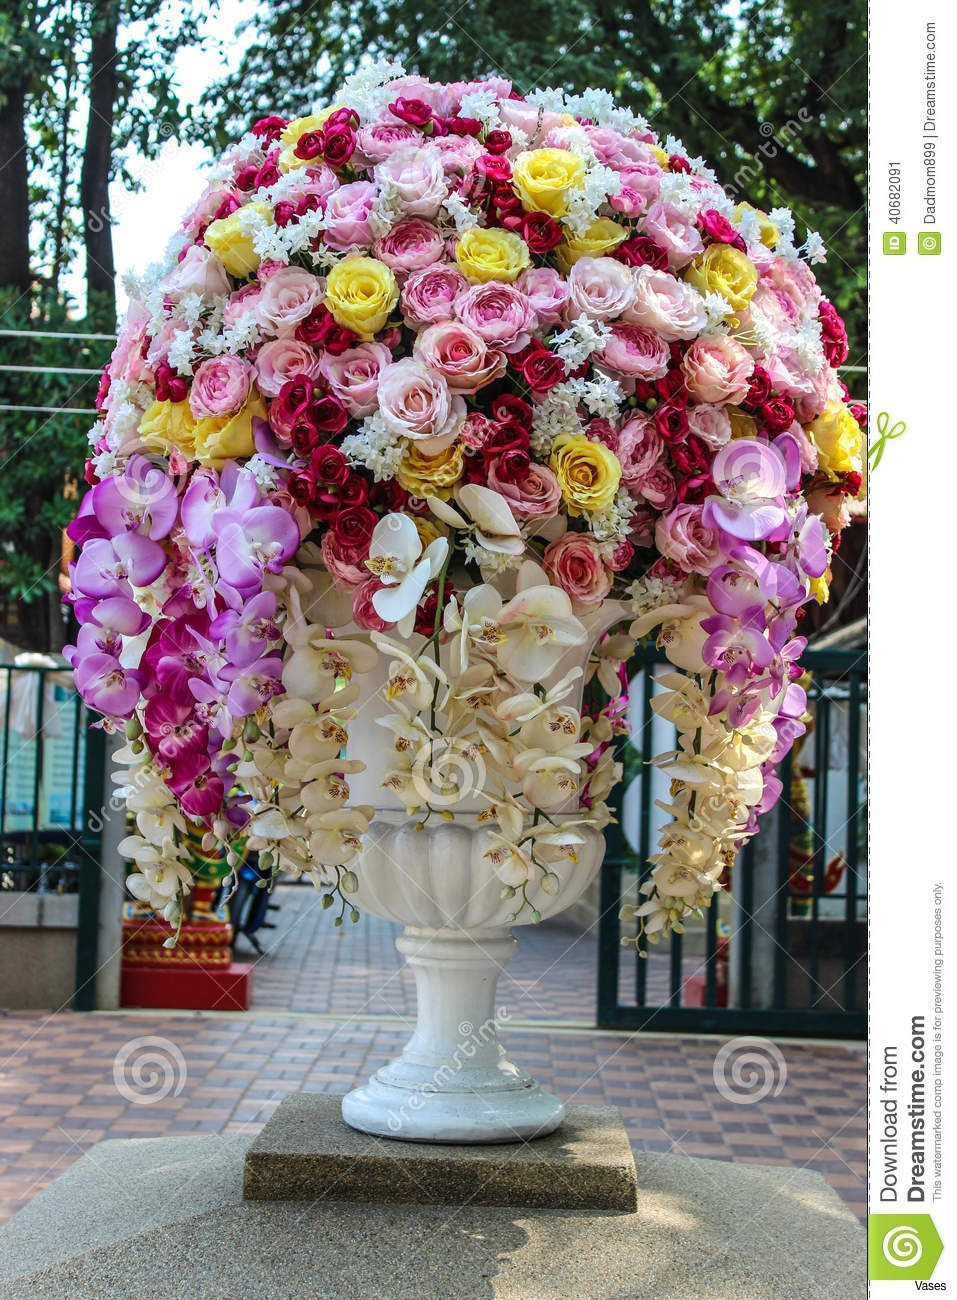 huge glass floor vase of large glass vase photos vases flower floor vase with flowersi 0d regarding large glass vase photos vases flower floor vase with flowersi 0d outdoor arrangements scheme